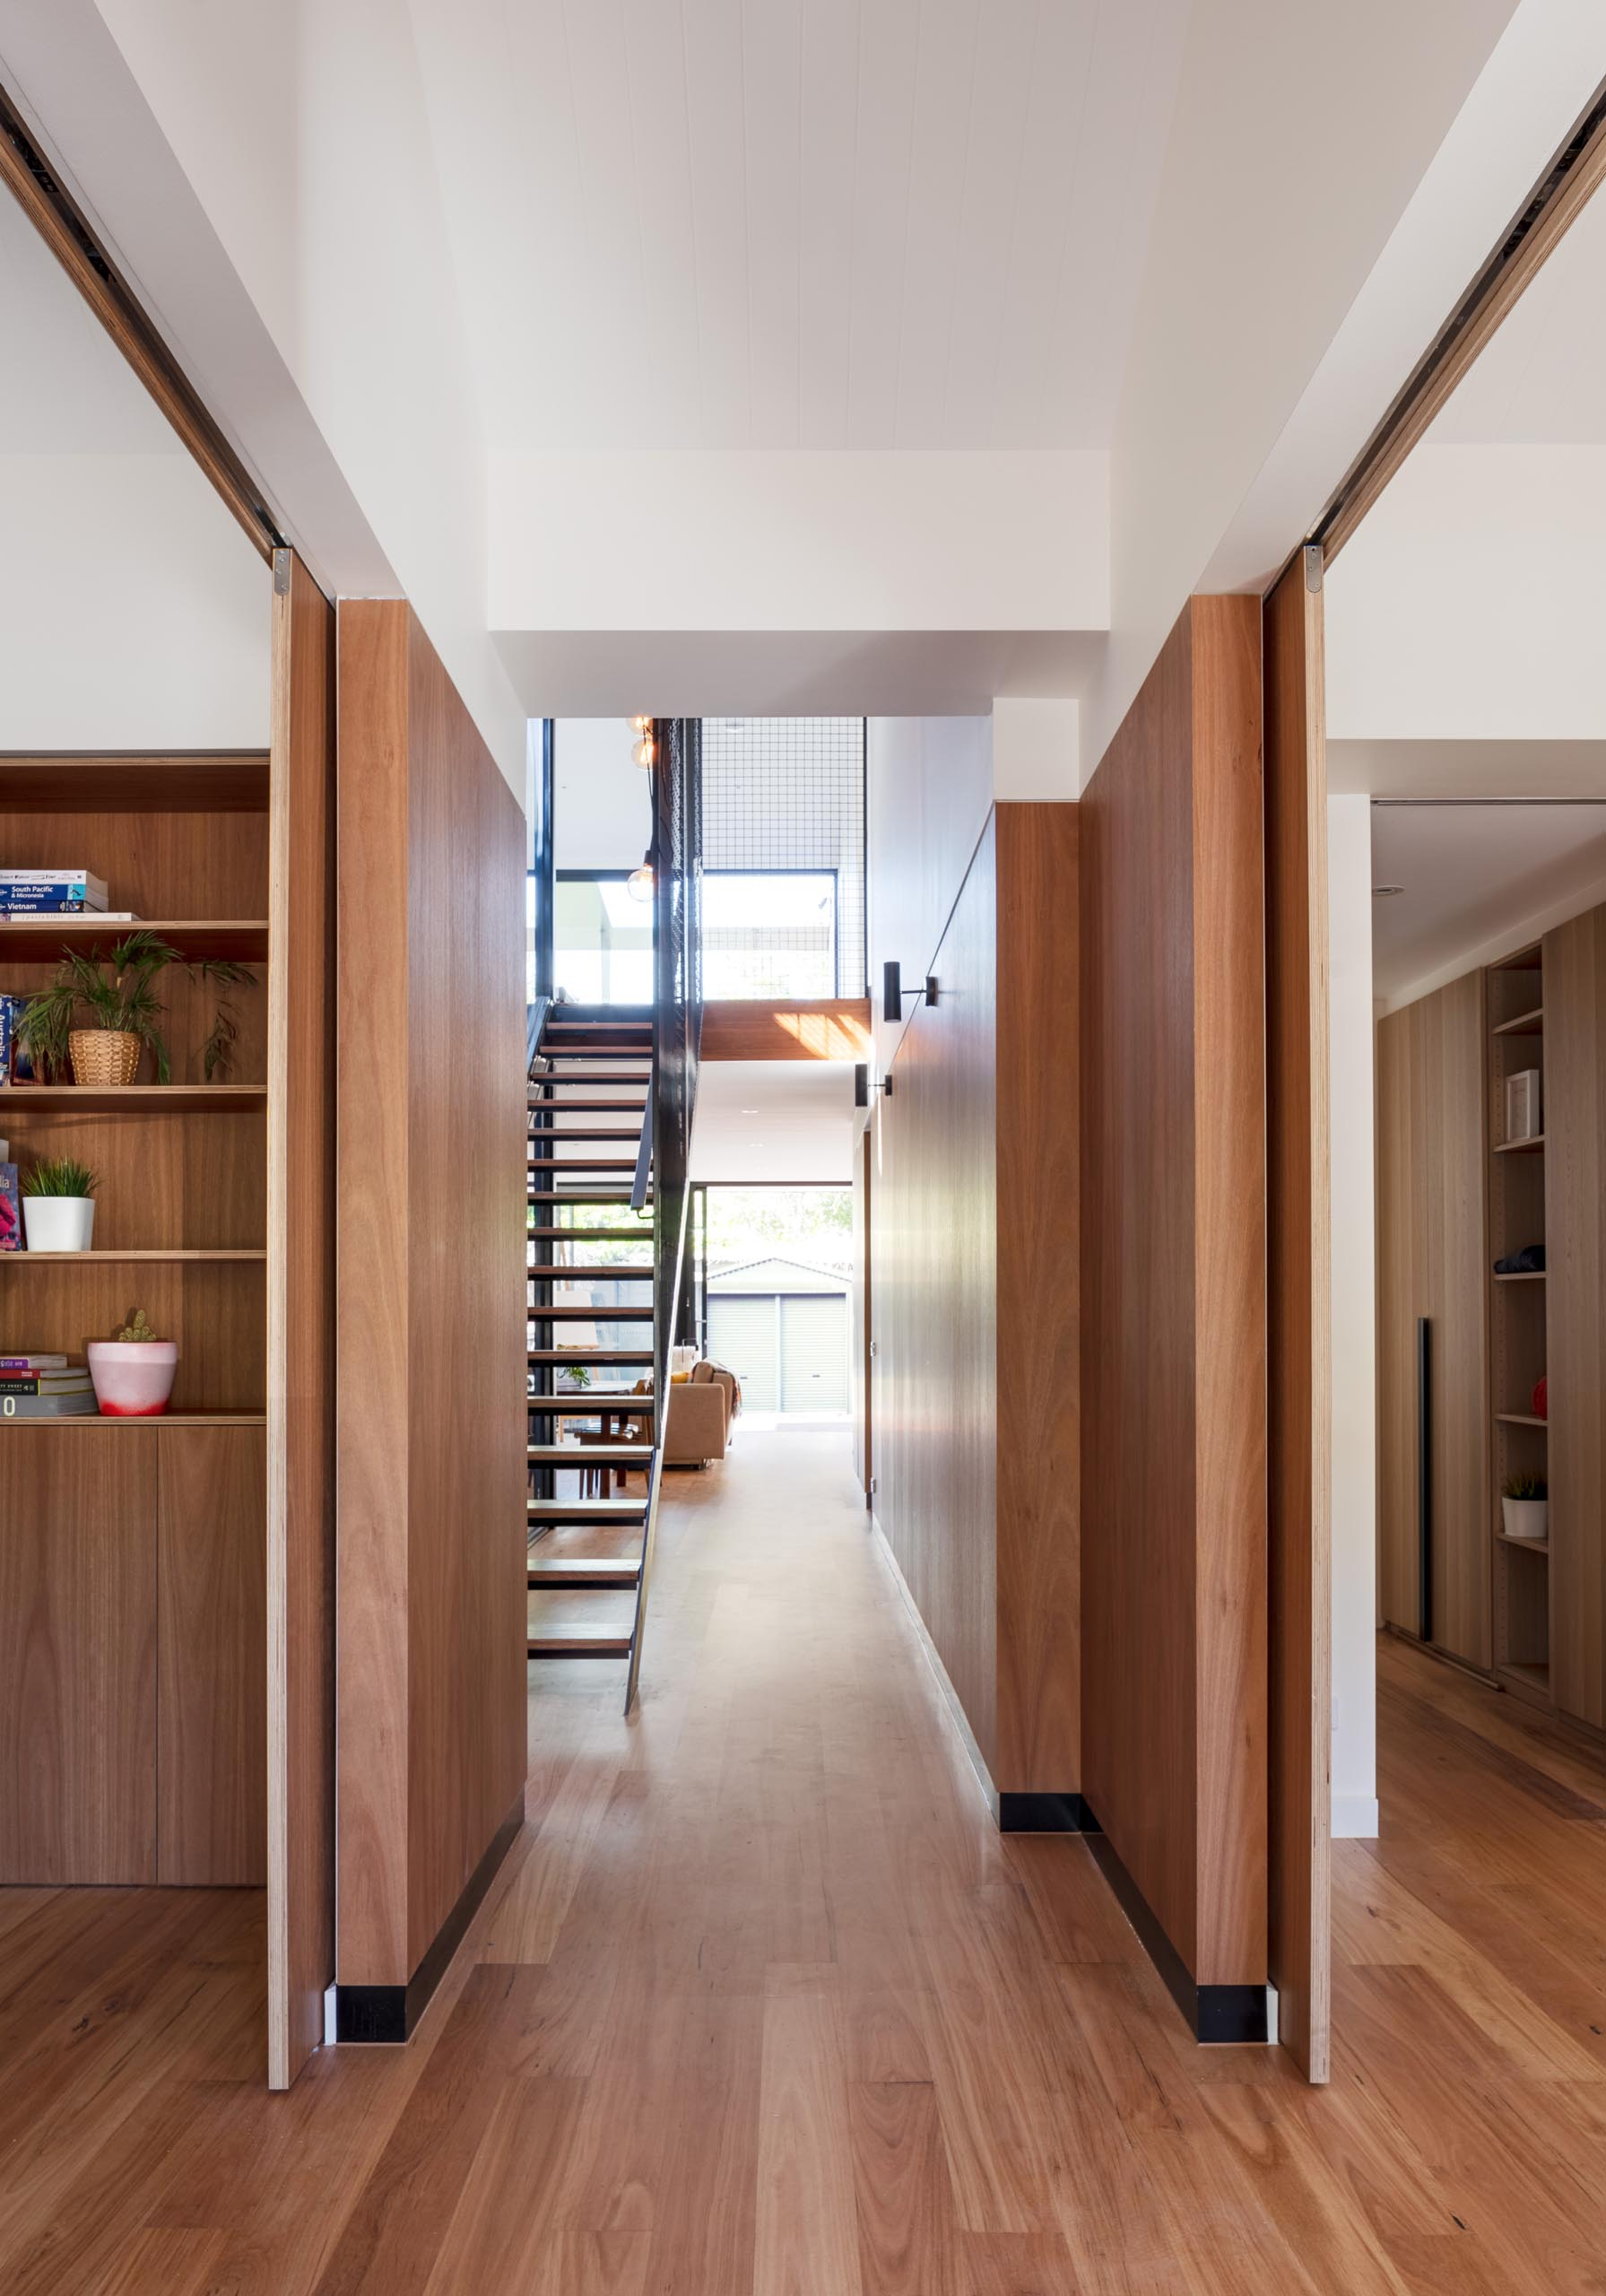 Blackbutt flooring is used throughout adding a warmth to this modern home interiors.